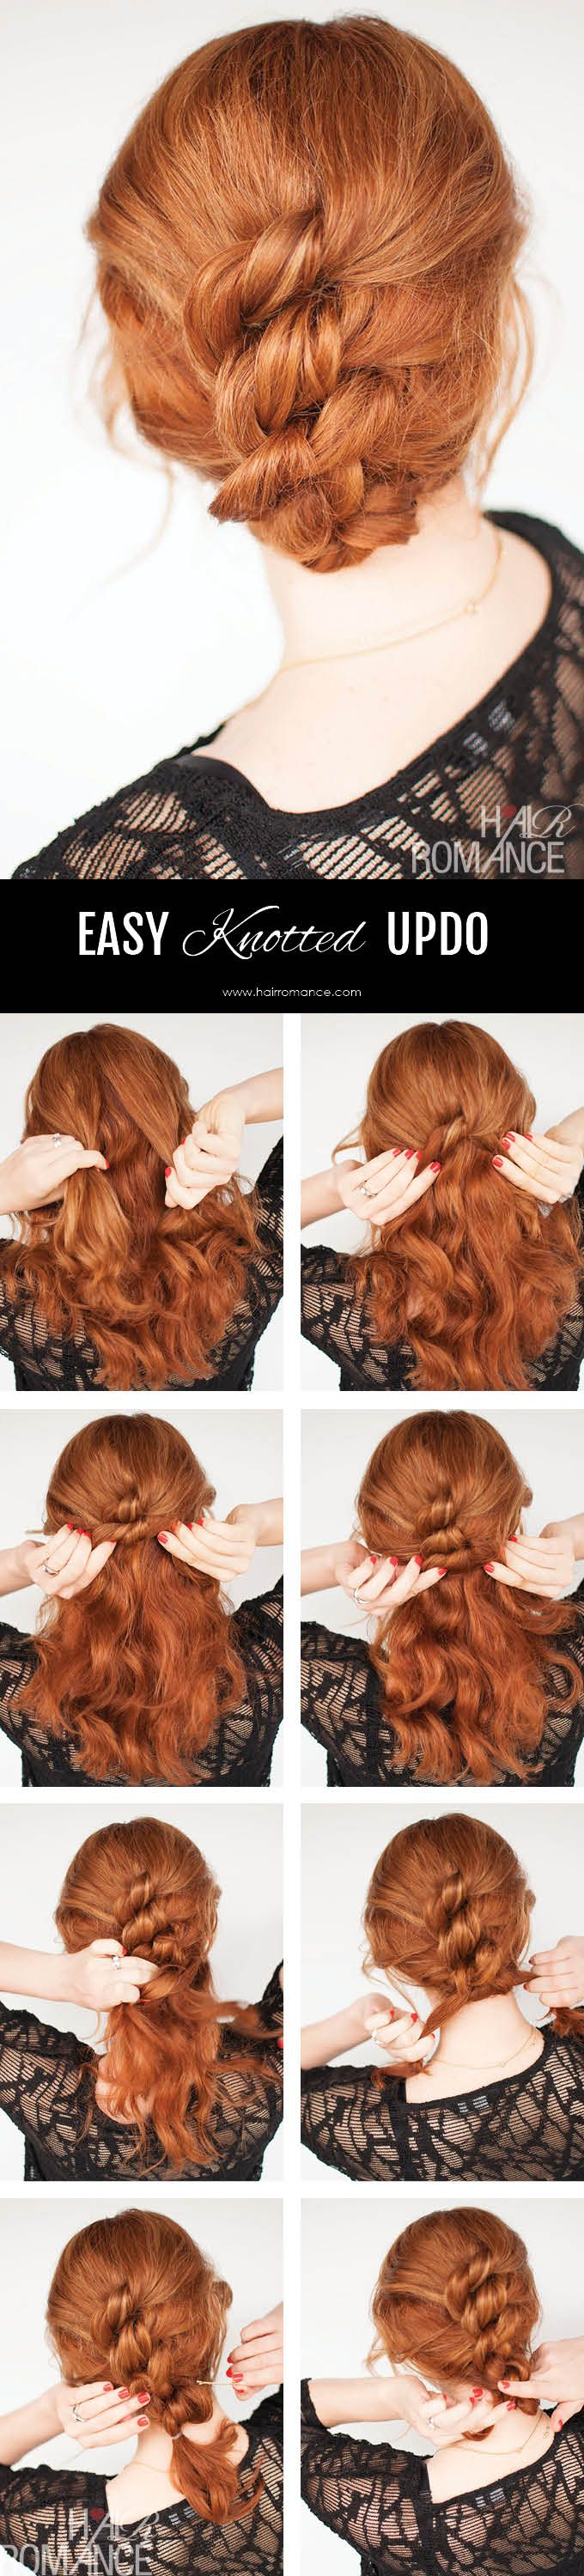 Easy knotted hairstyle tutorial hair romance tutorials pinterest